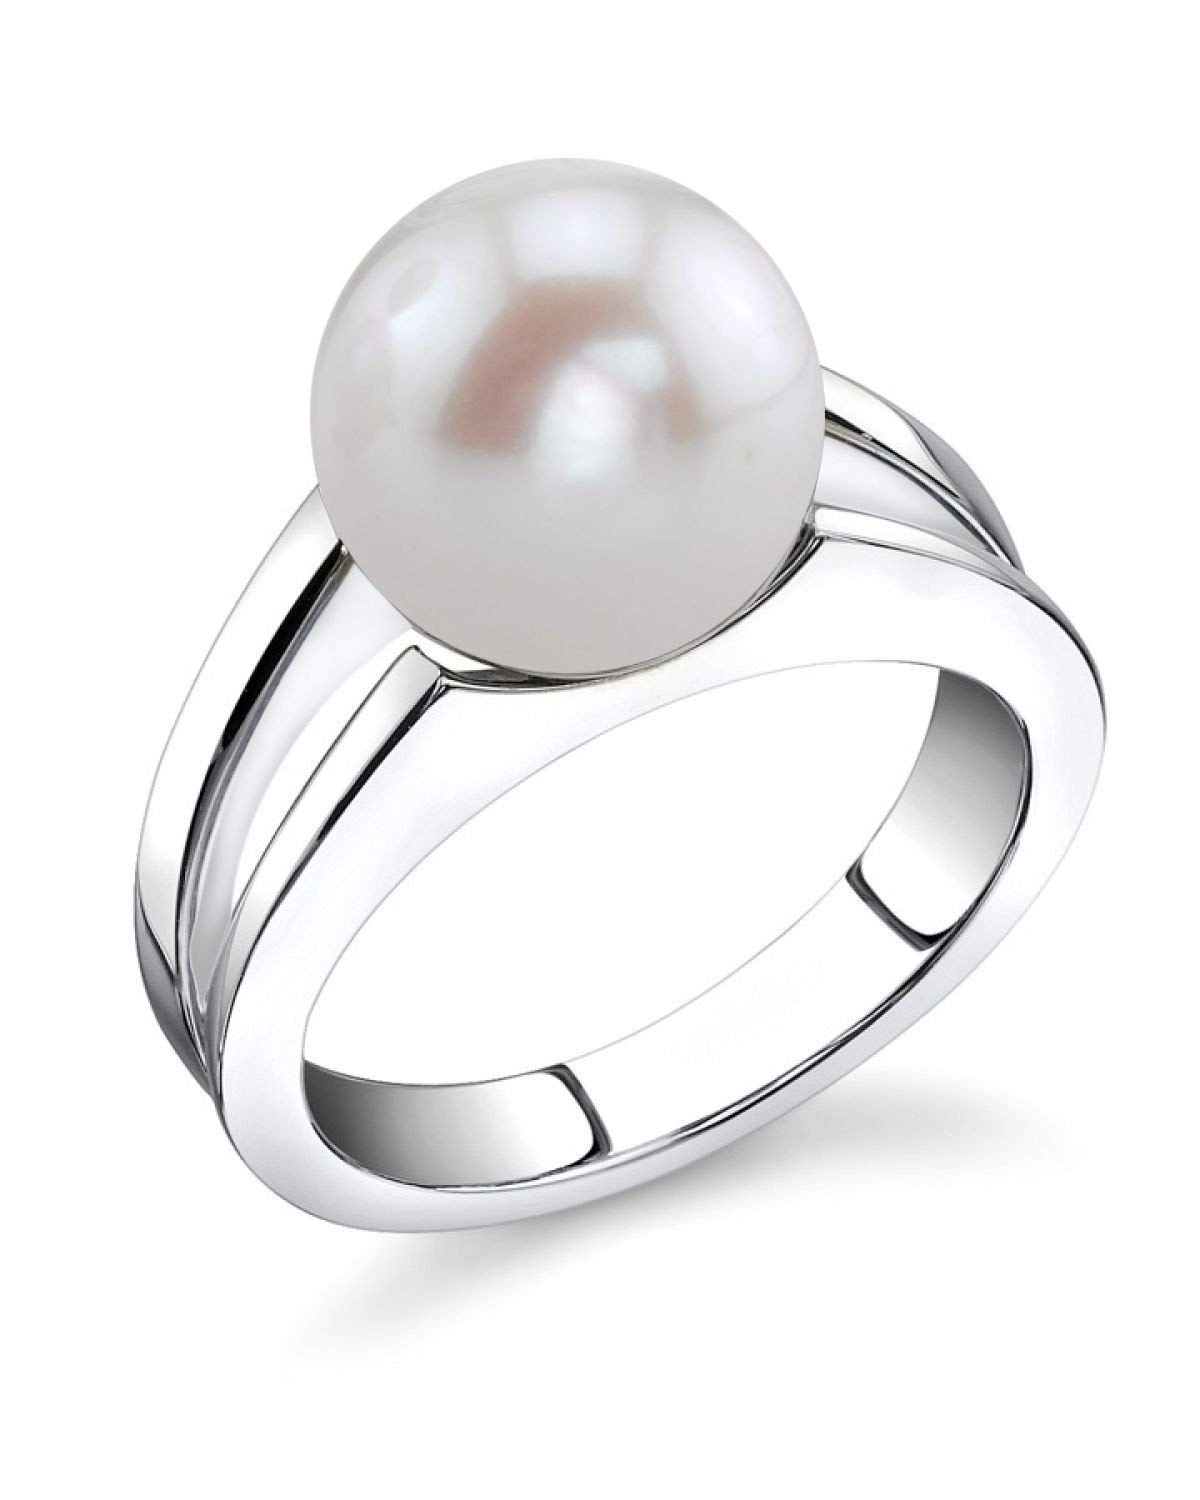 THE PEARL SOURCE 10-11mm Genuine White Freshwater Cultured Pearl Kasandra Ring for Women by The Pearl Source